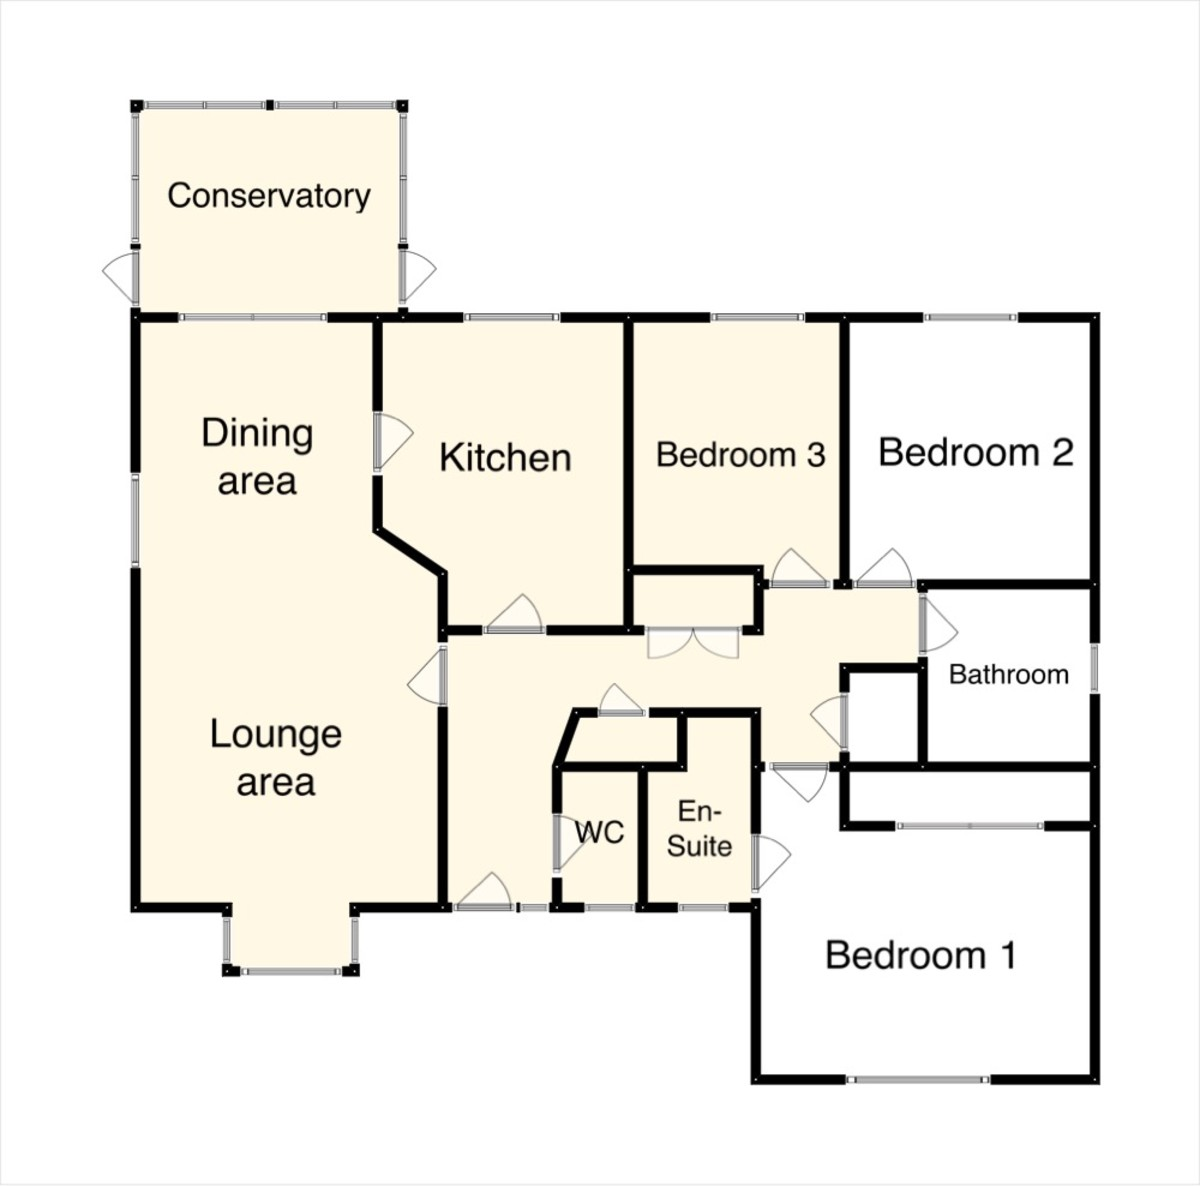 Floor Plan-Higher Sandygate, Newton Abbot